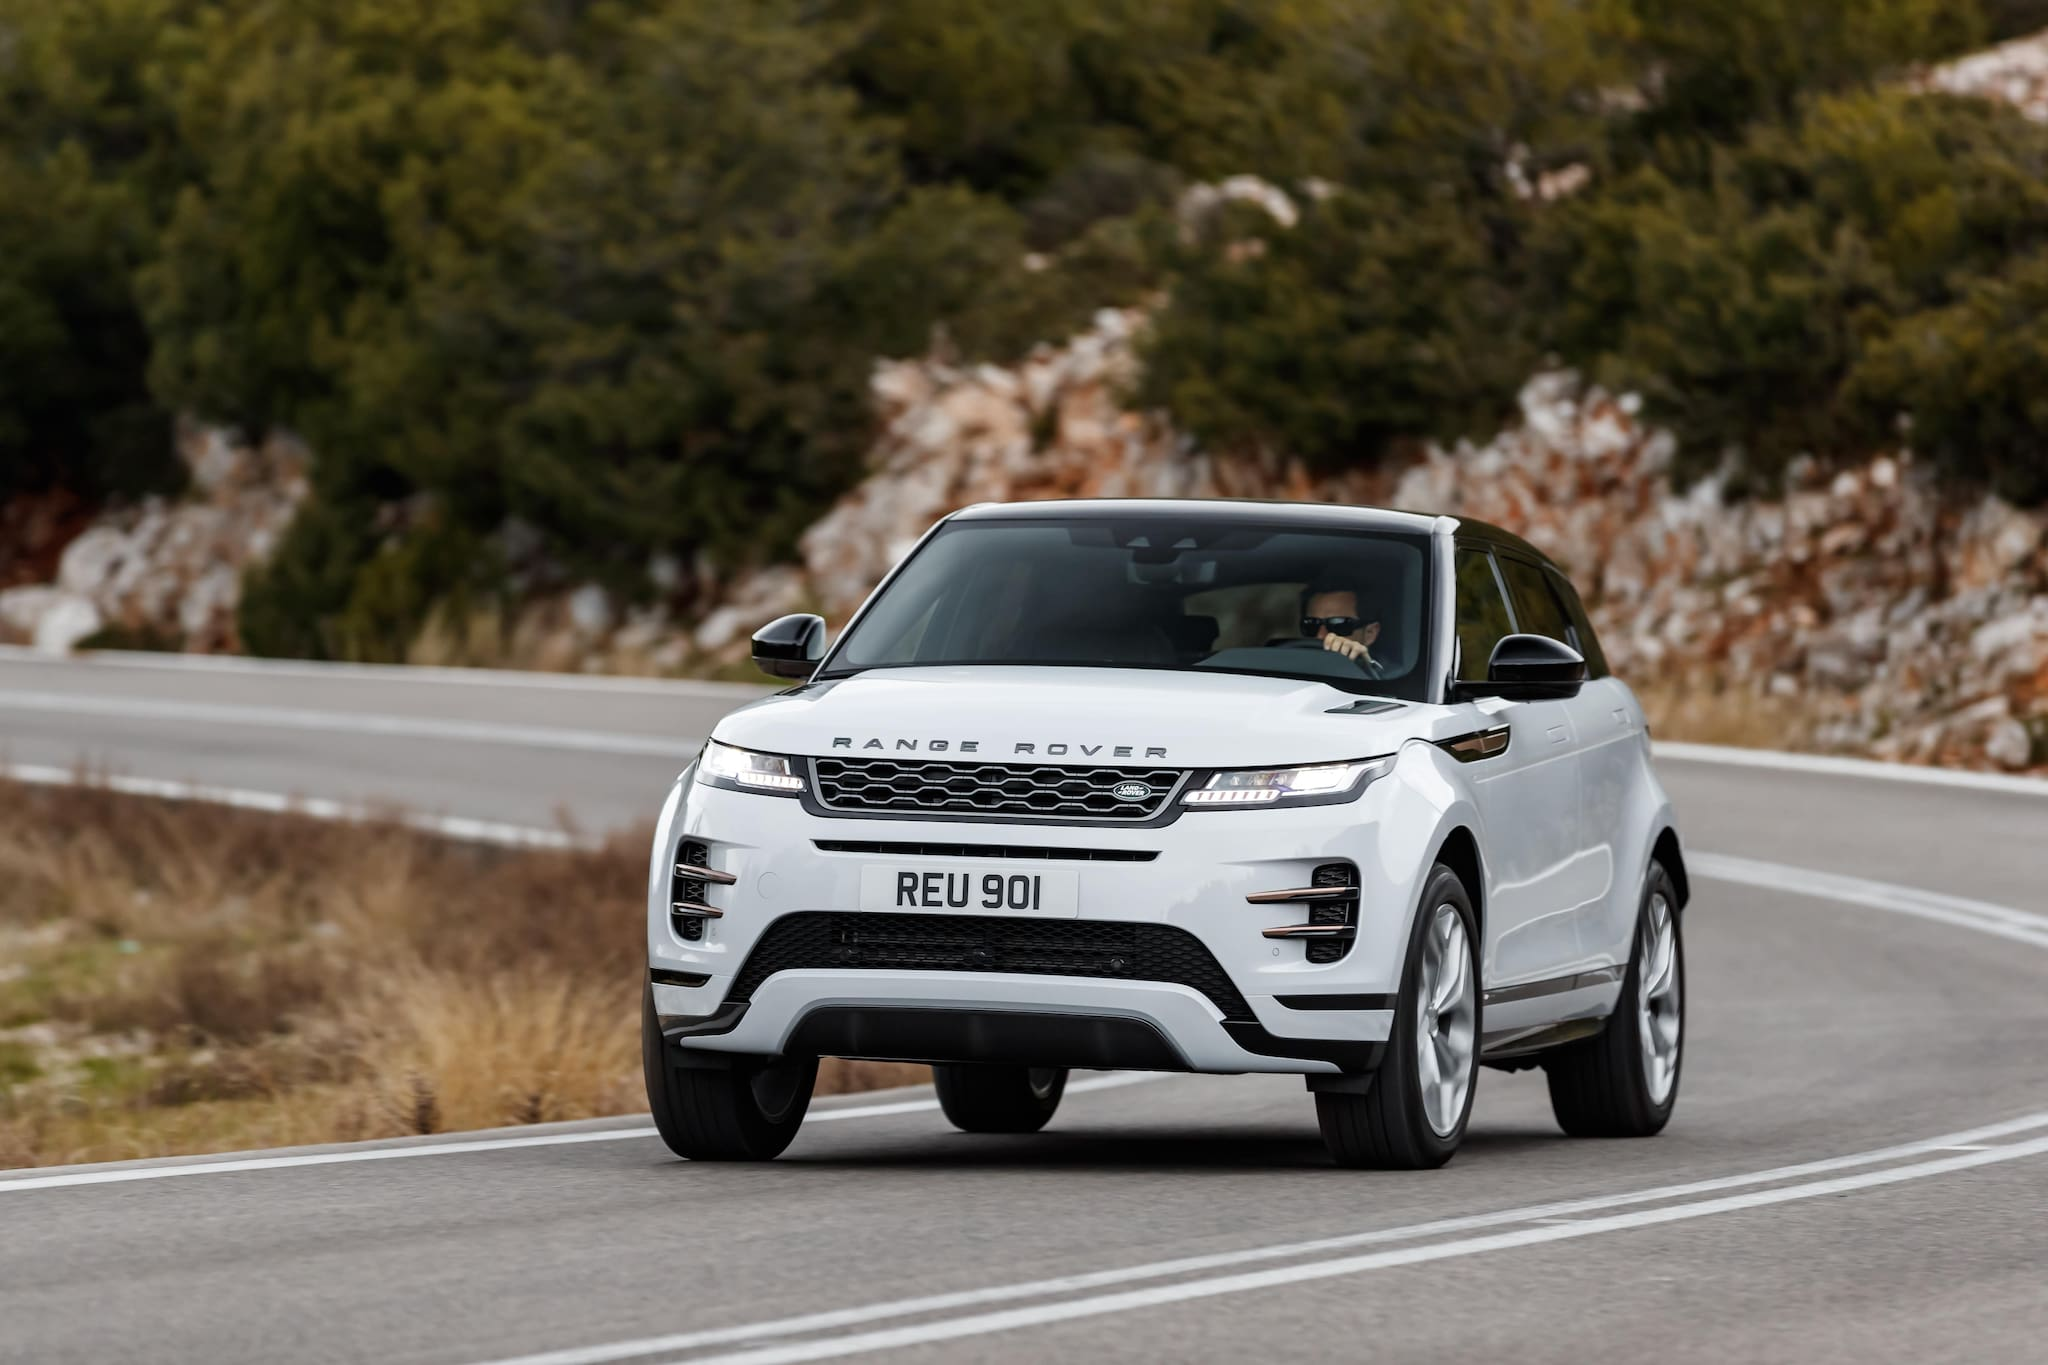 All-New Range Rover Evoque Gets 5-Star Euro NCAP Safety Rating